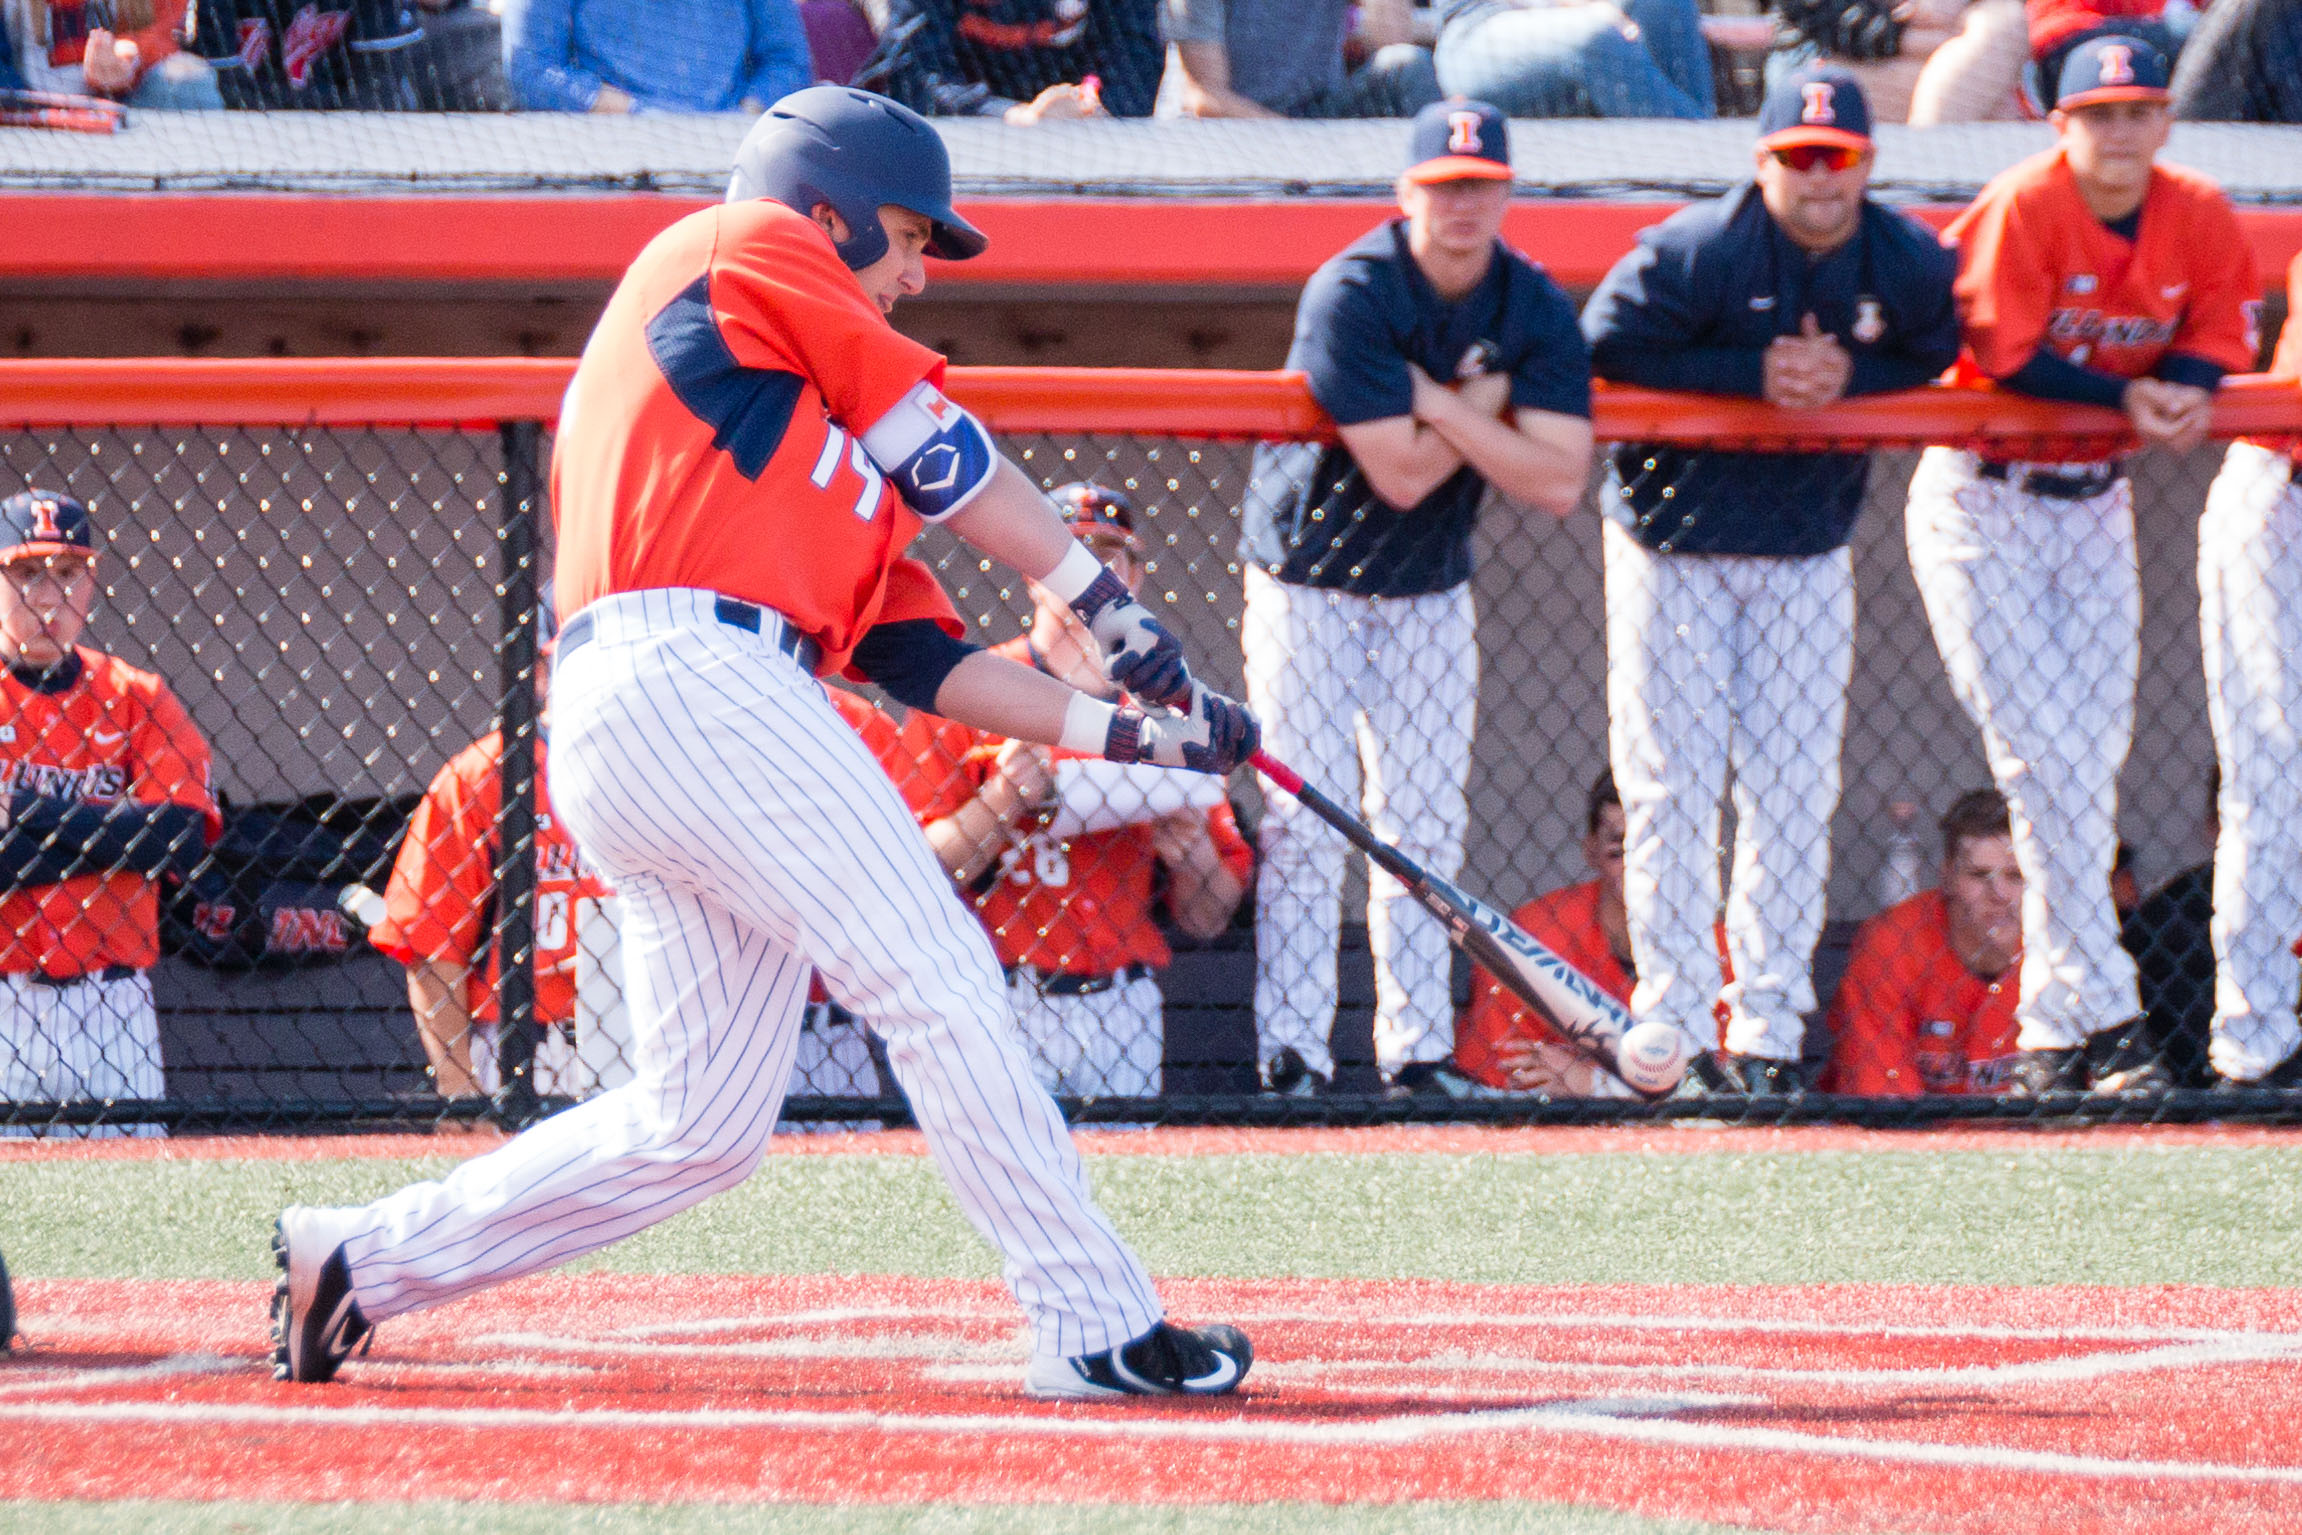 Illinois' Dan Rowbottom (19) takes a swing against Indiana State on Saturday, April 1. Illinois defeated Western Michigan 13-3 Tuesday.